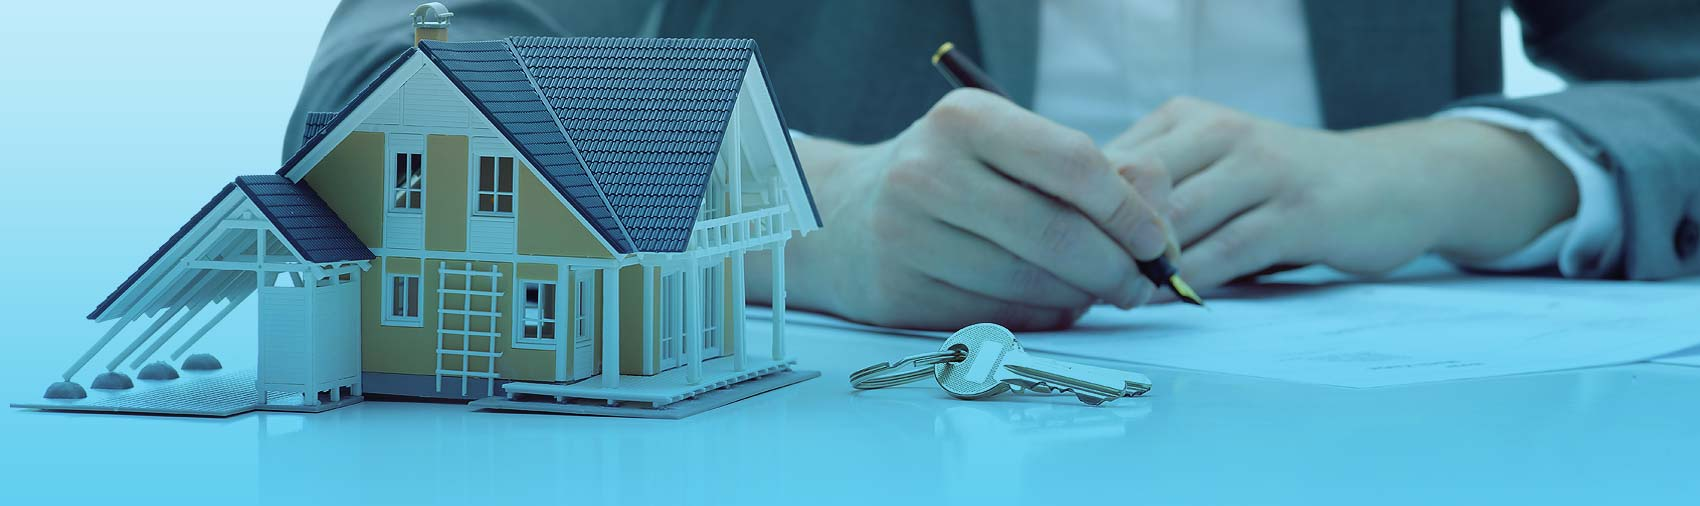 Edmonton real estate lawyers for houses and condo transactions